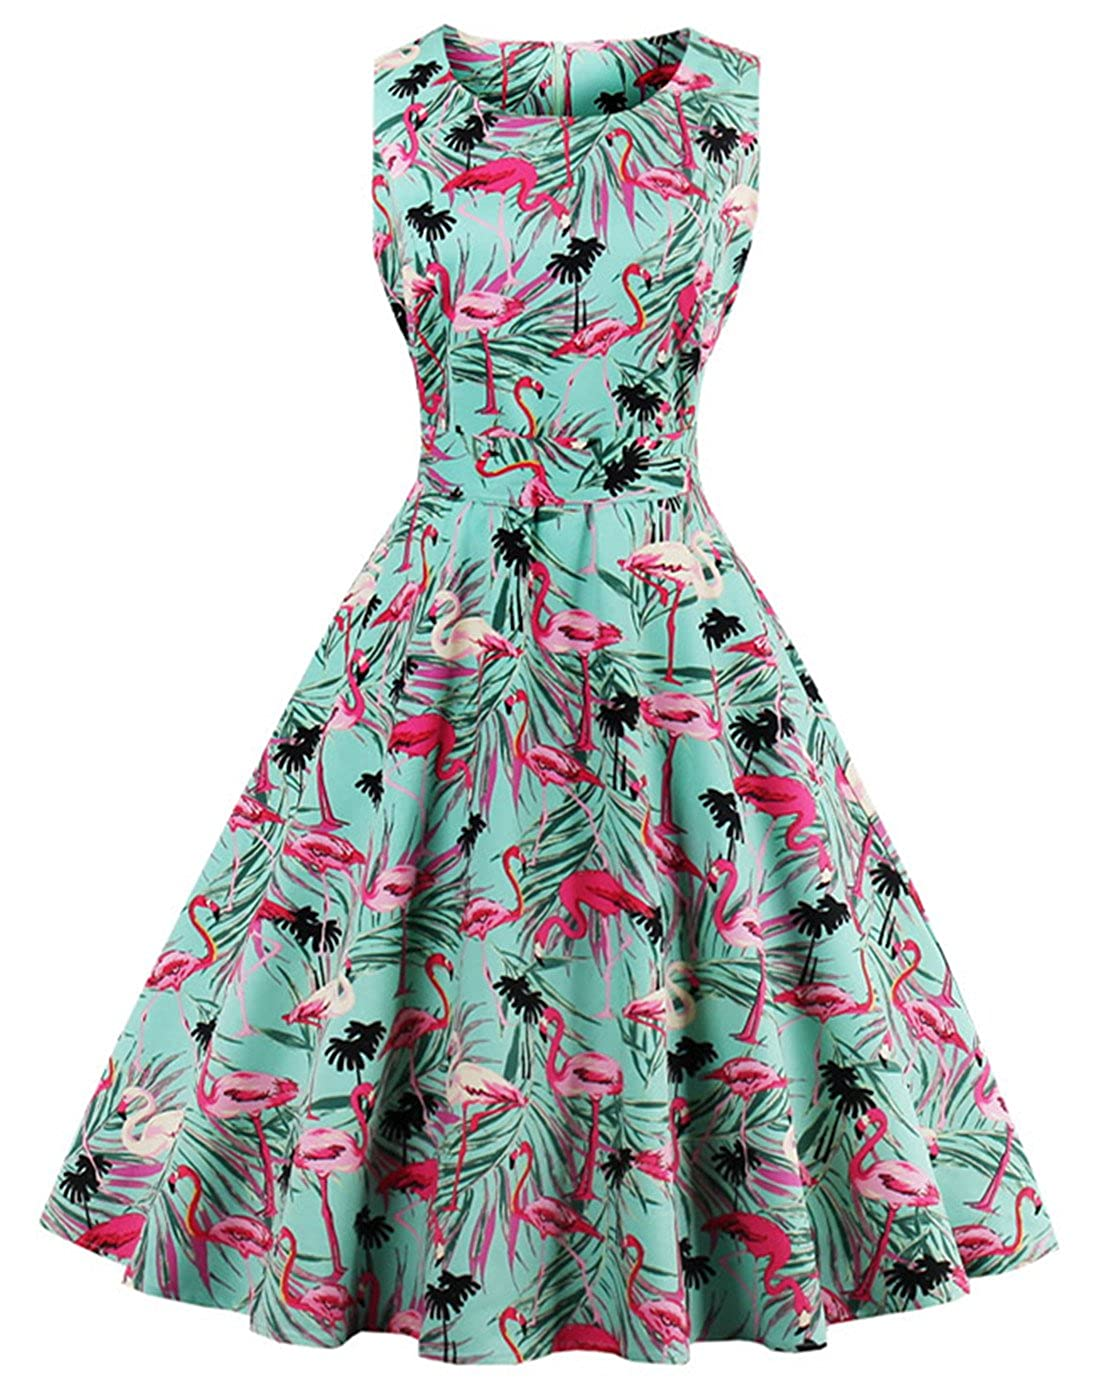 Retro Tiki Dress – Tropical, Hawaiian Dresses Wellwits Womens Tropical Leaf Flamingo Hepburn 1950s Vintage Swing Dress $24.98 AT vintagedancer.com